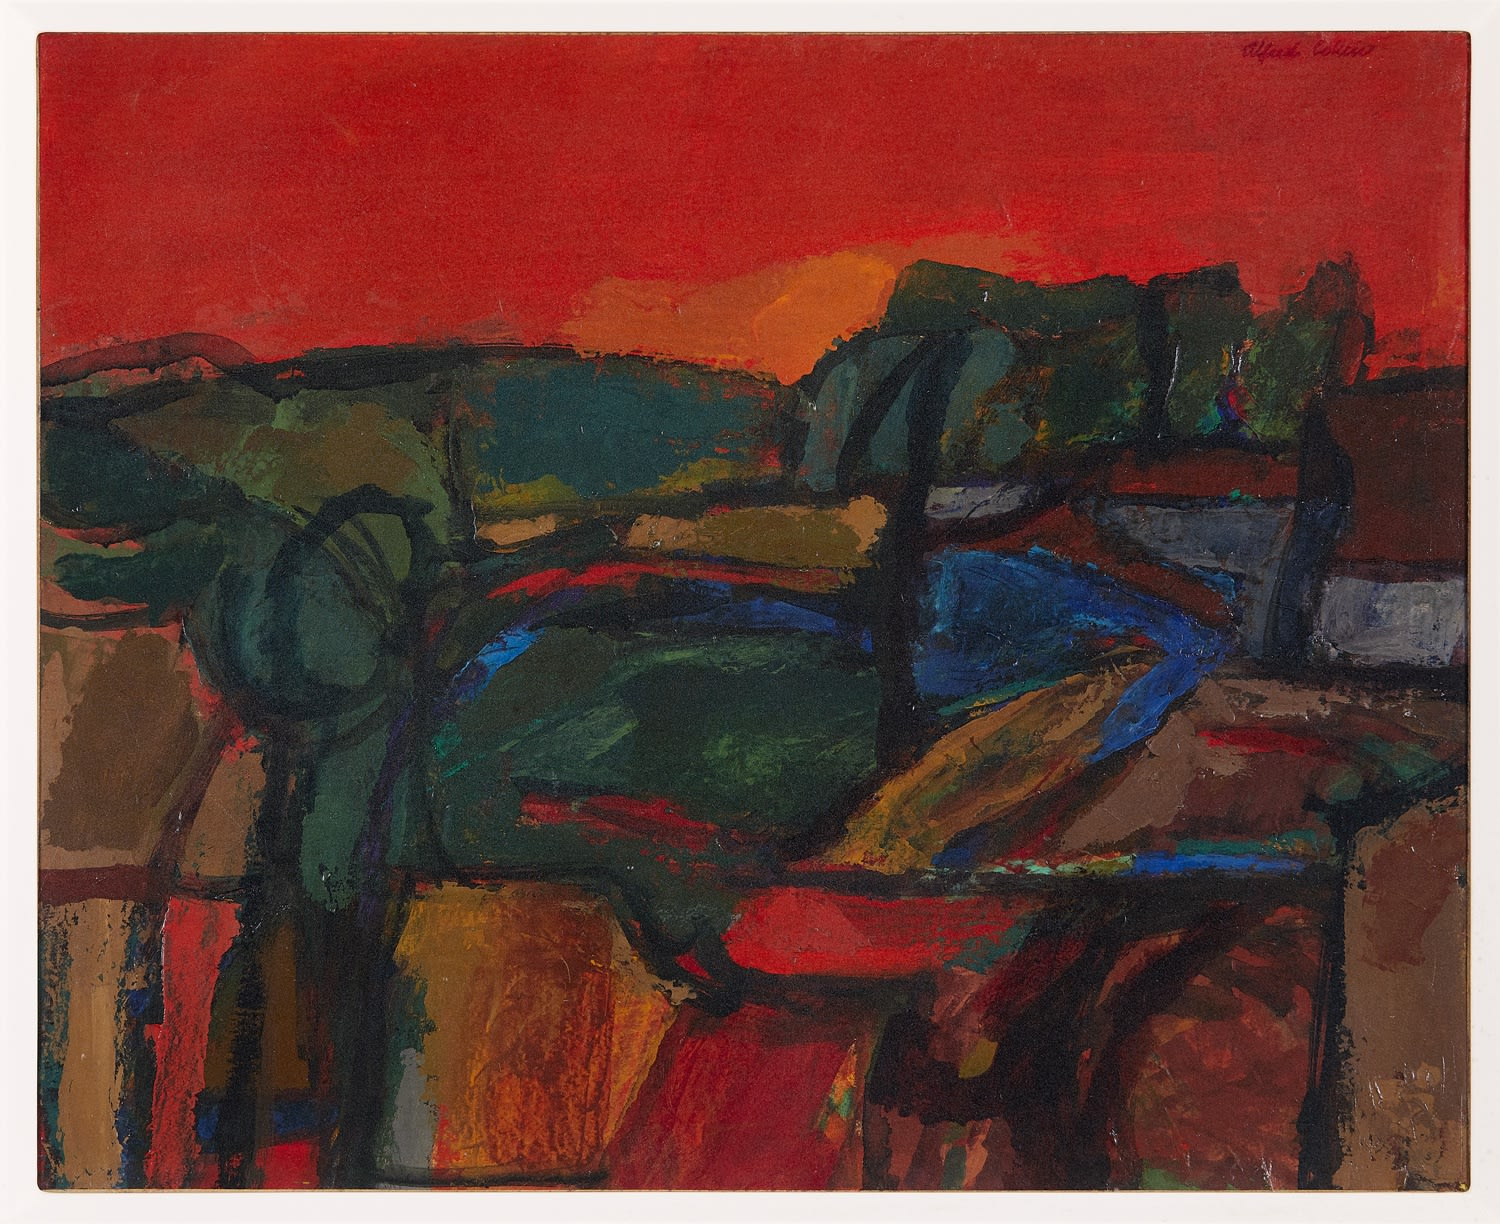 Alfred Cohen (1920-2001) Red Landscape in Kent 1965 Oil on canvas 45.7 x 55.9 cm Alfred Cohen Art Foundation © Estate of Alfred Cohen 2020